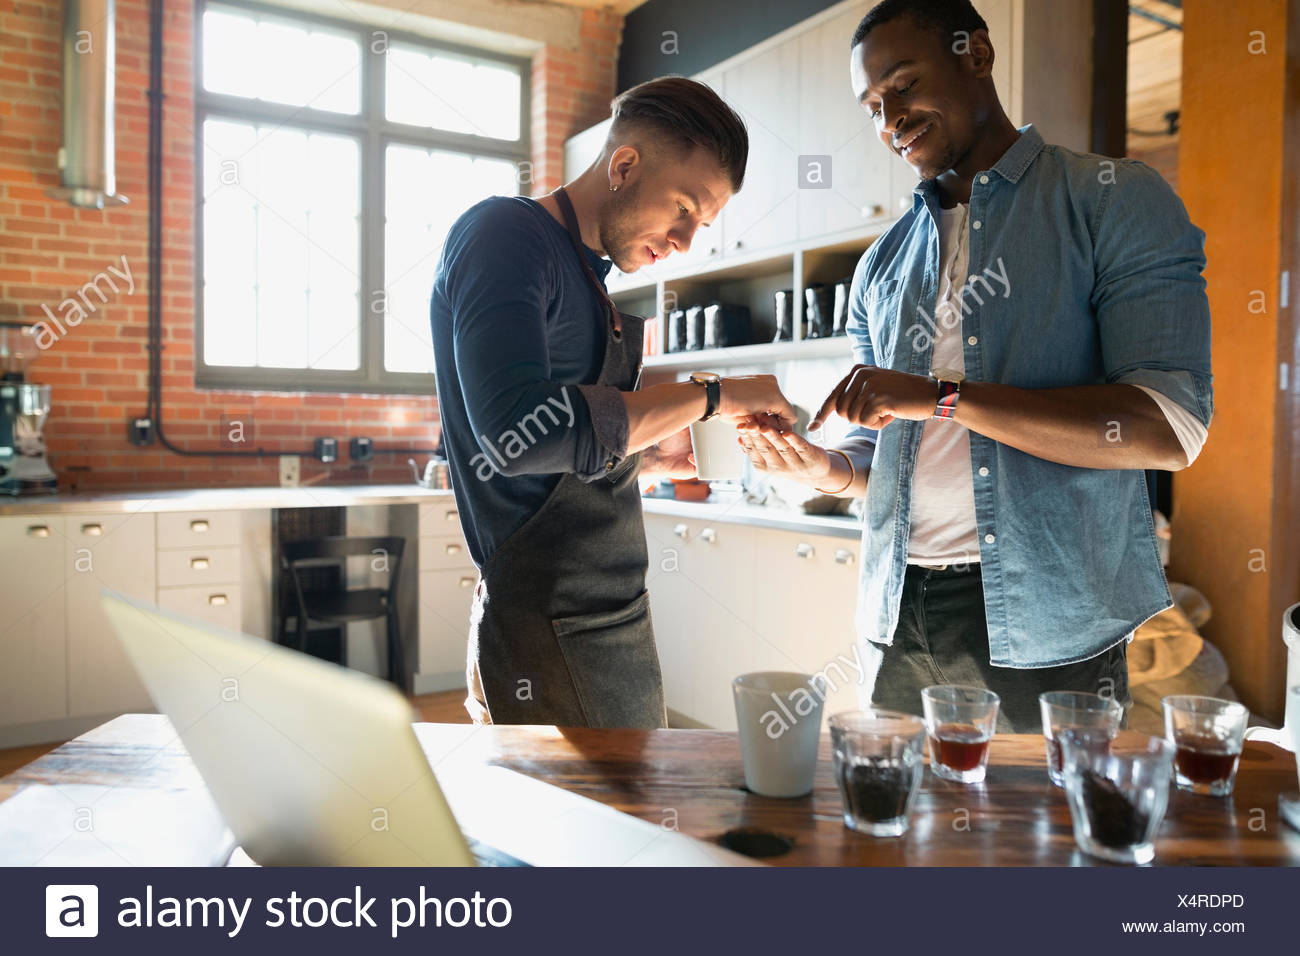 Entrepreneurial coffee roasters examining beans in kitchen - Stock Image